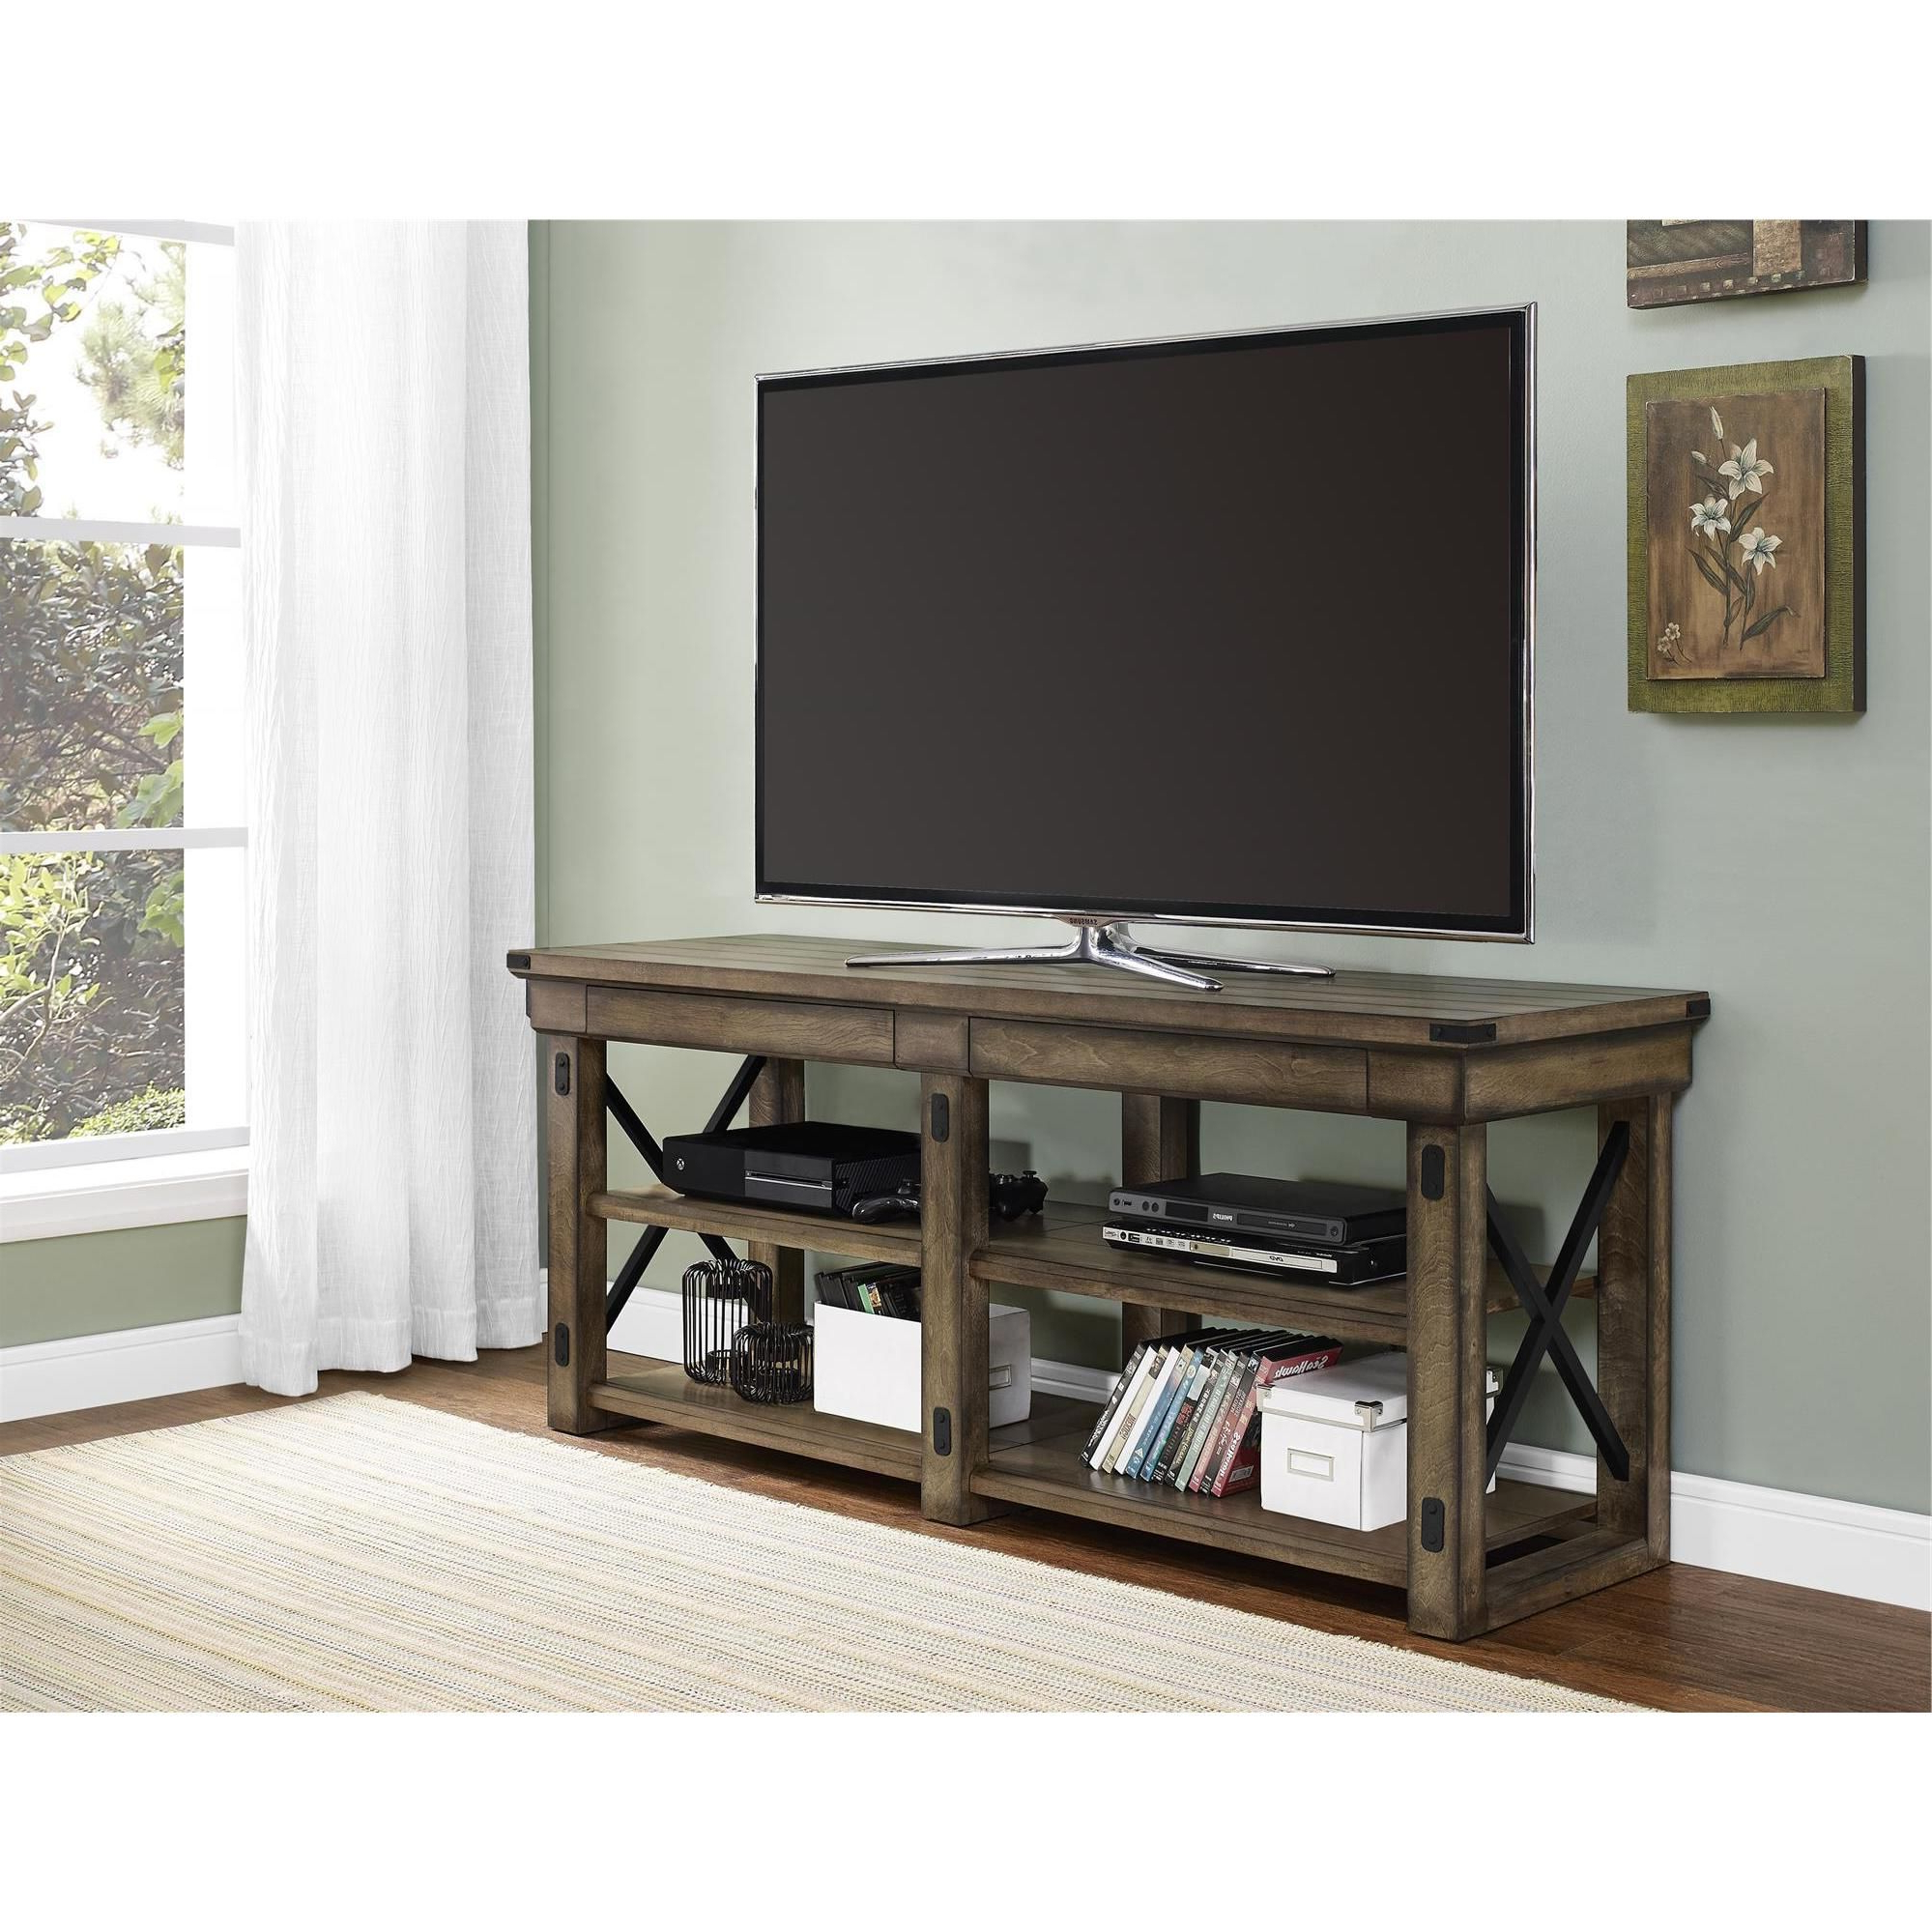 Trendy Bring Beauty And Better Organization Into Your Living Room With The Intended For Sinclair Grey 68 Inch Tv Stands (View 15 of 20)